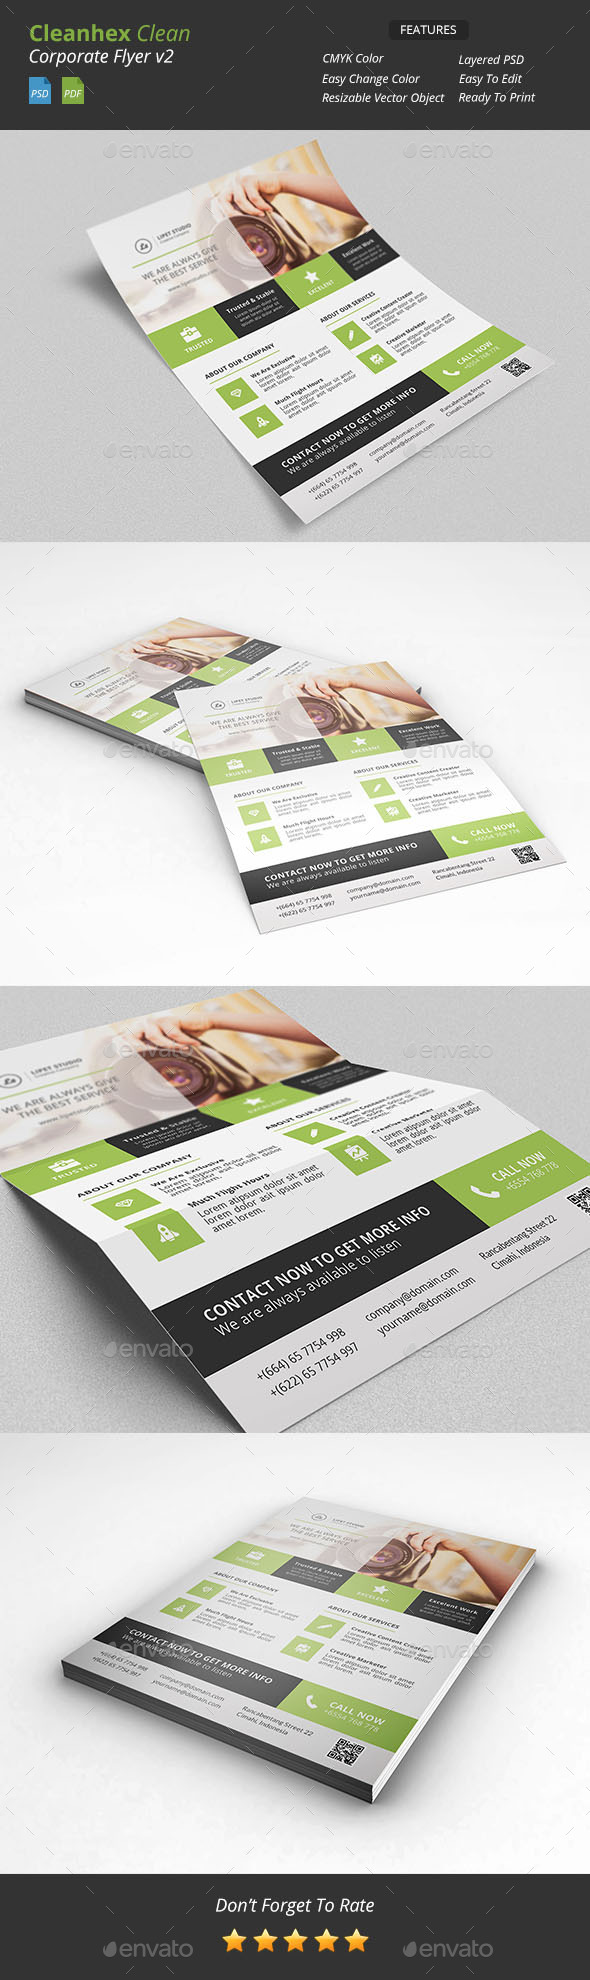 GraphicRiver Cleanhex Clean Corporate Flyer v2 9703569